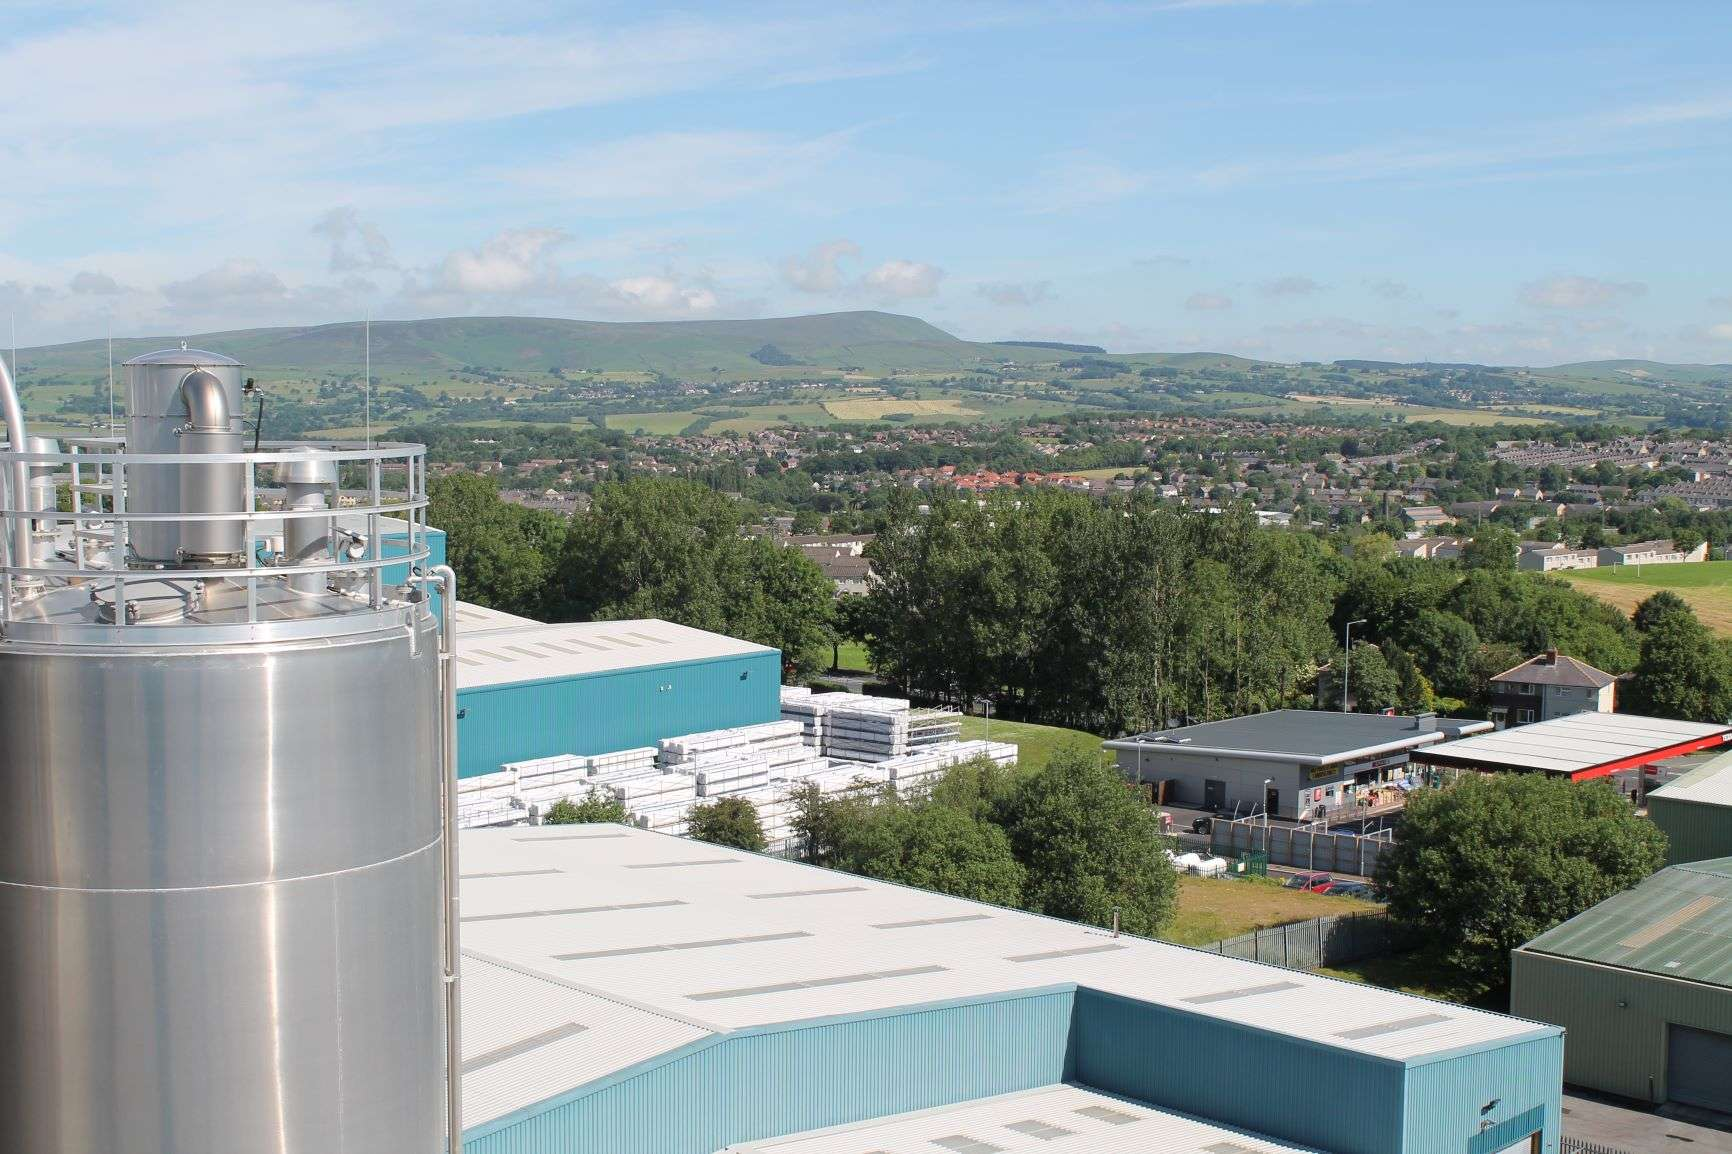 VEKA Site and Lancashire views